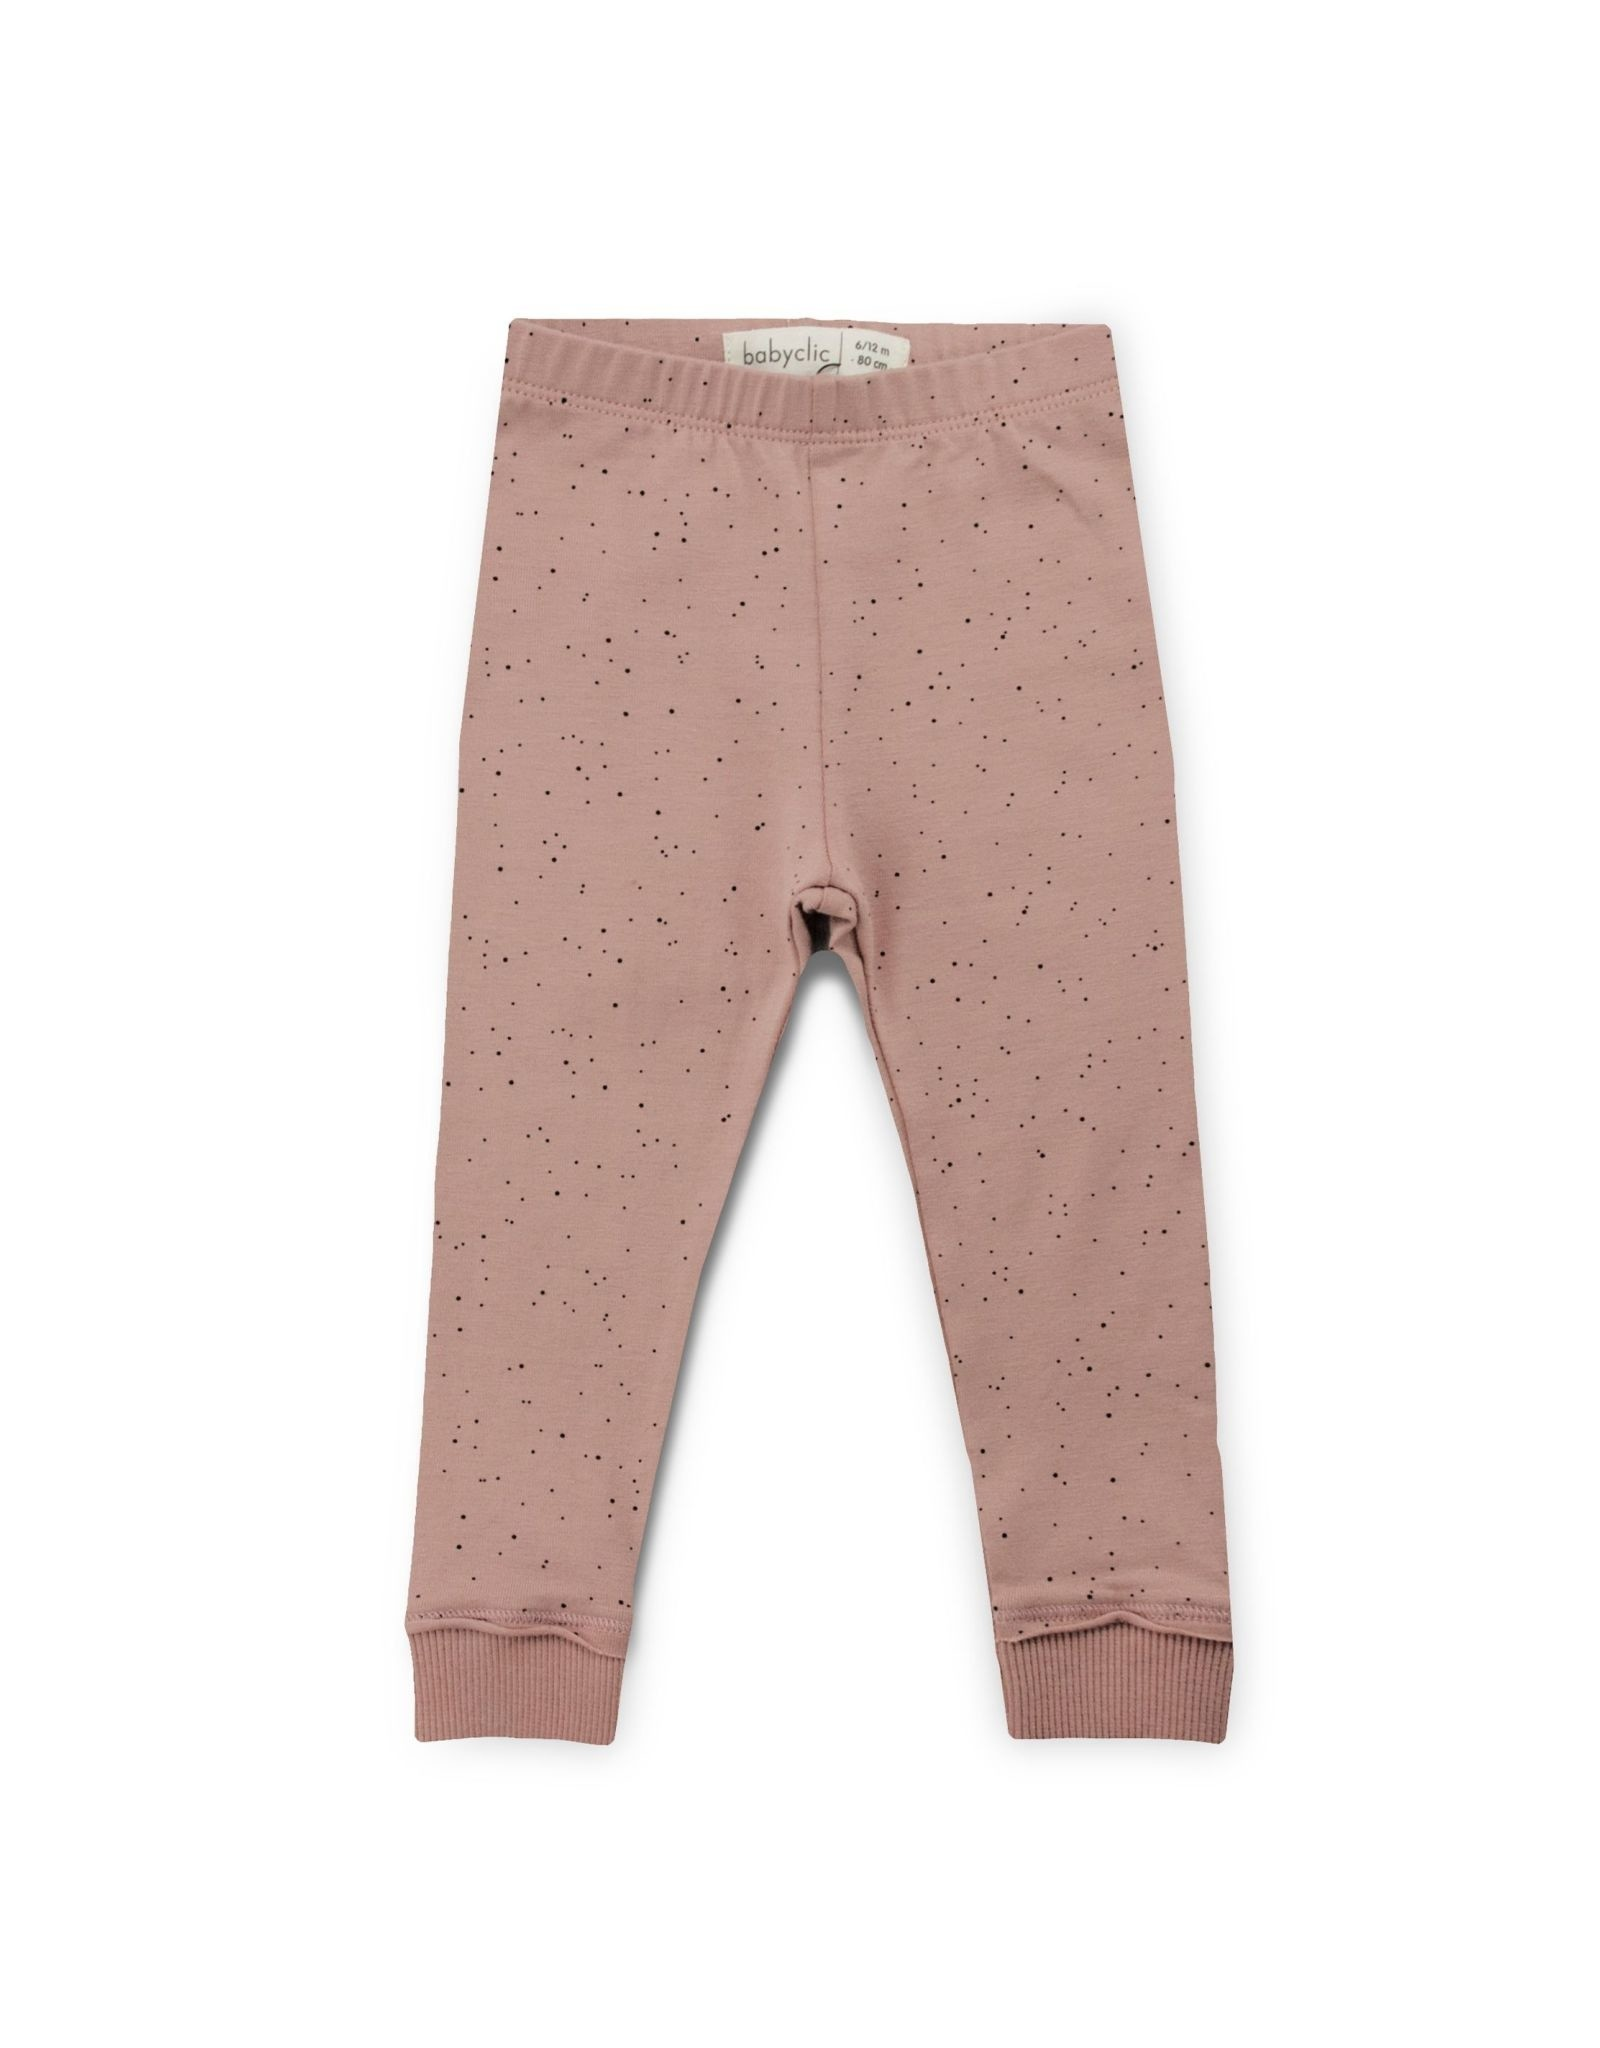 BabyClic sand leggings- blush